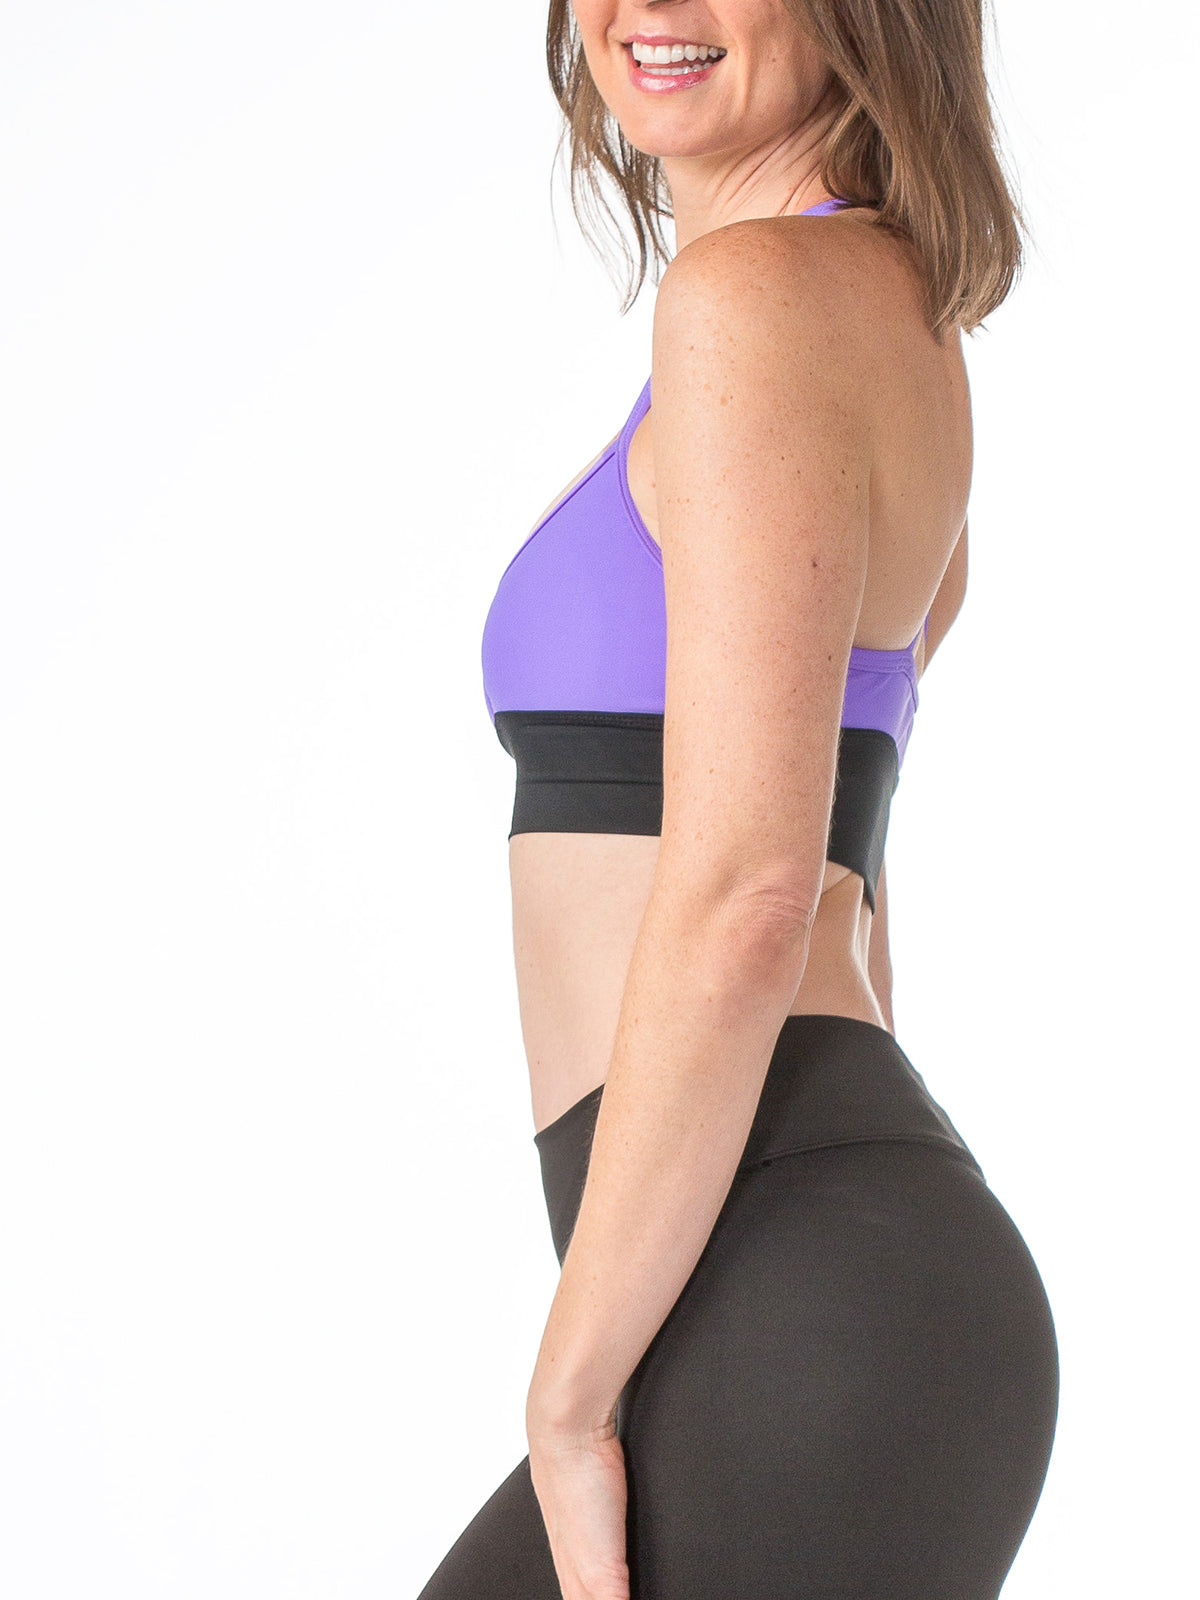 Zen Strappy Sports Bra Iris Purple with Black Mesh